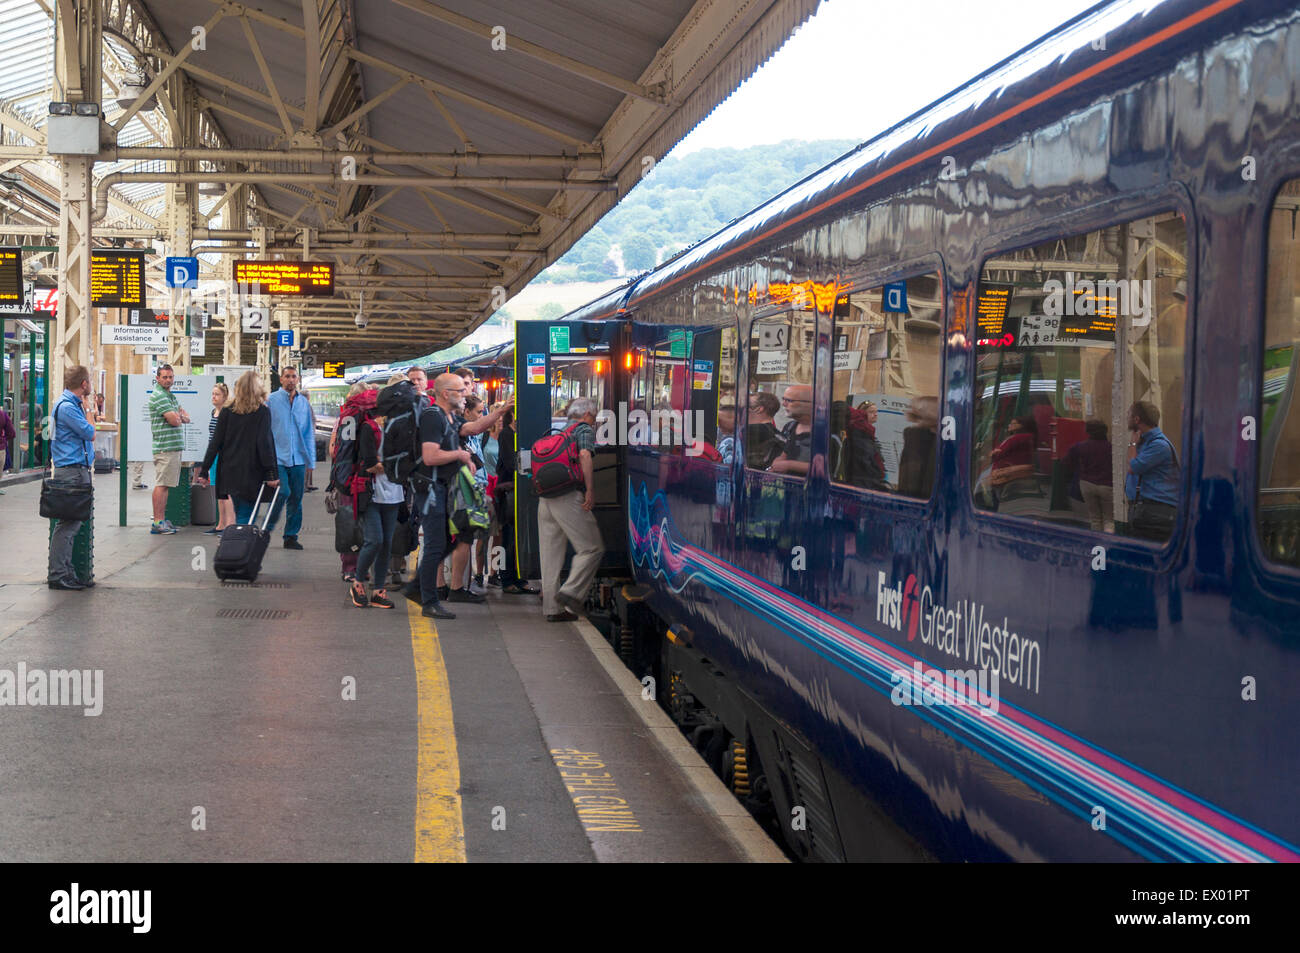 Passengers board a First Great Western train at Bath Spa railway station, Somerset, UK Stock Photo